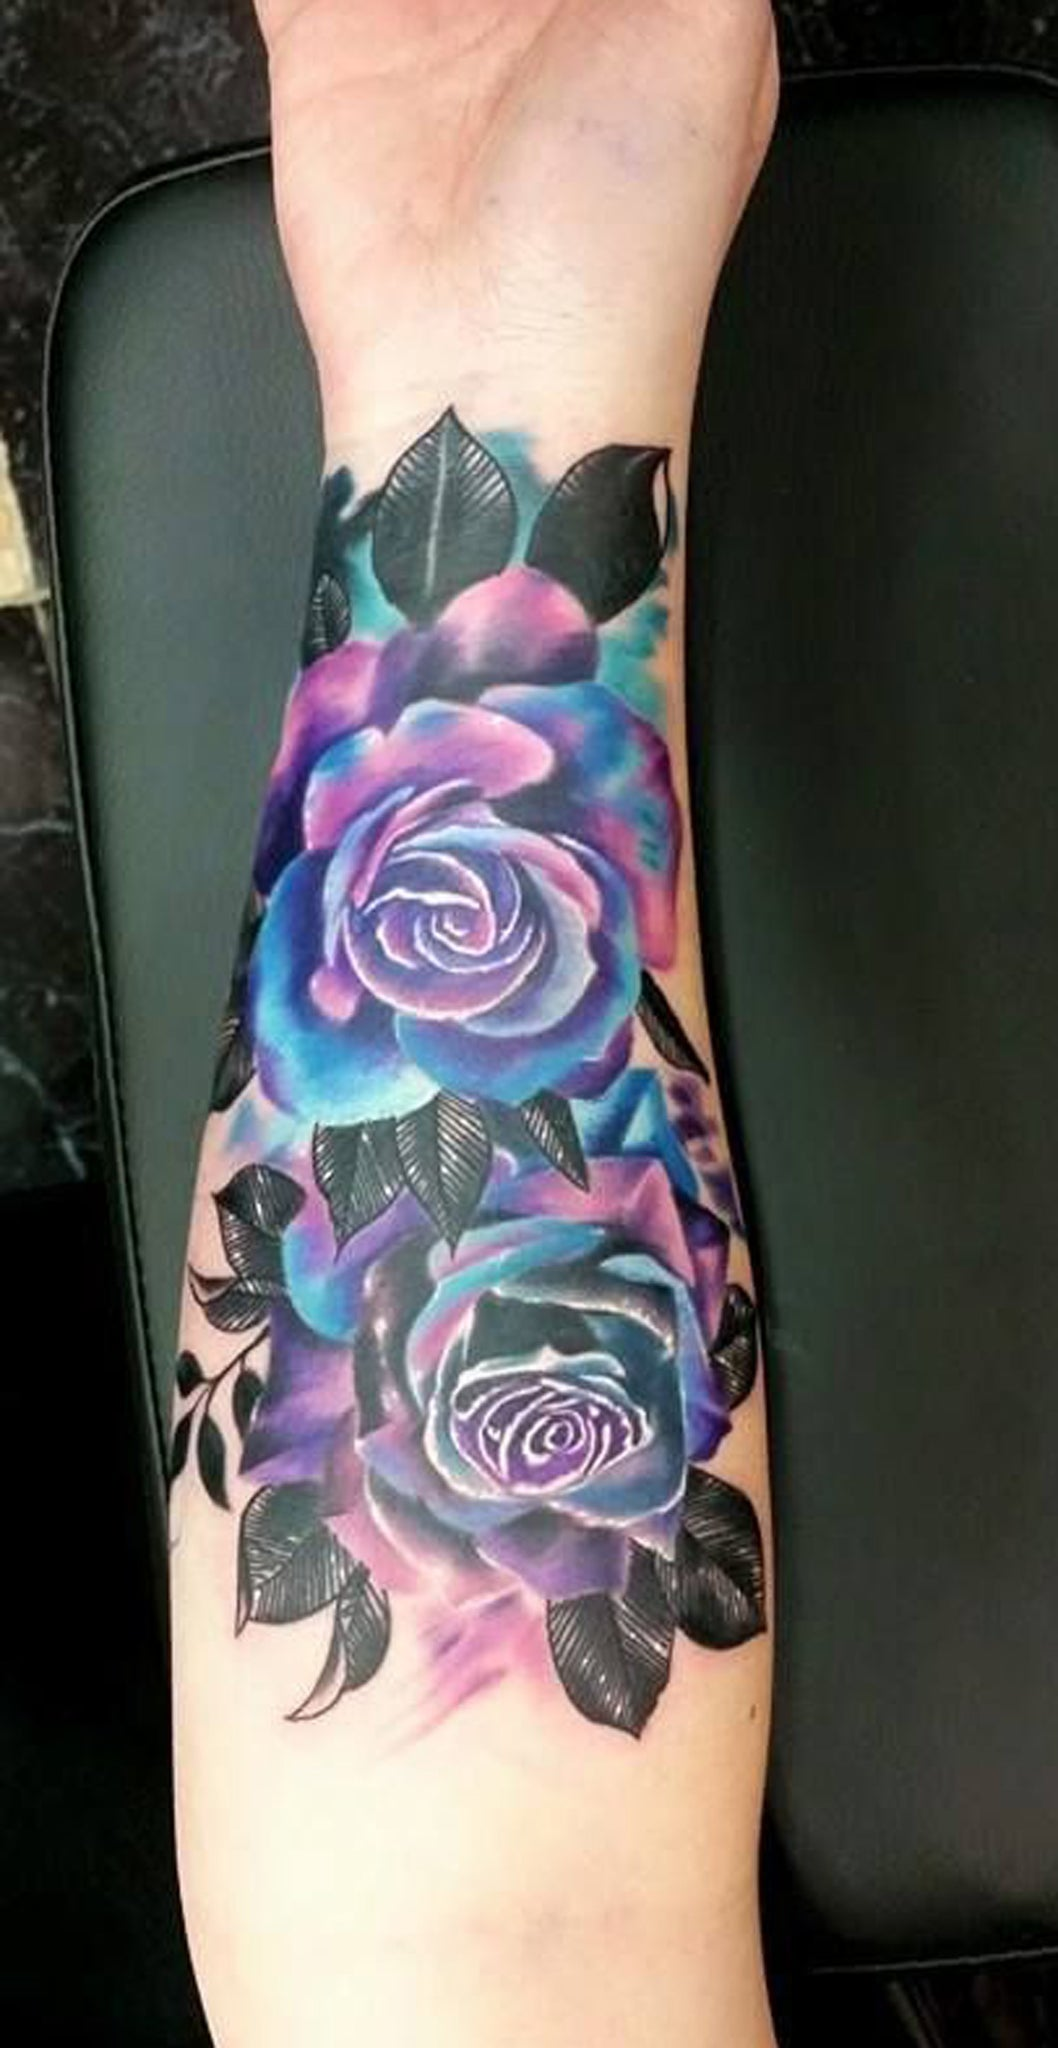 a94d072a9 Watercolor Rose Forearm Tattoo Ideas for Women - Realistic Vintage Flower  Inner Outer Arm Sleeve Tat